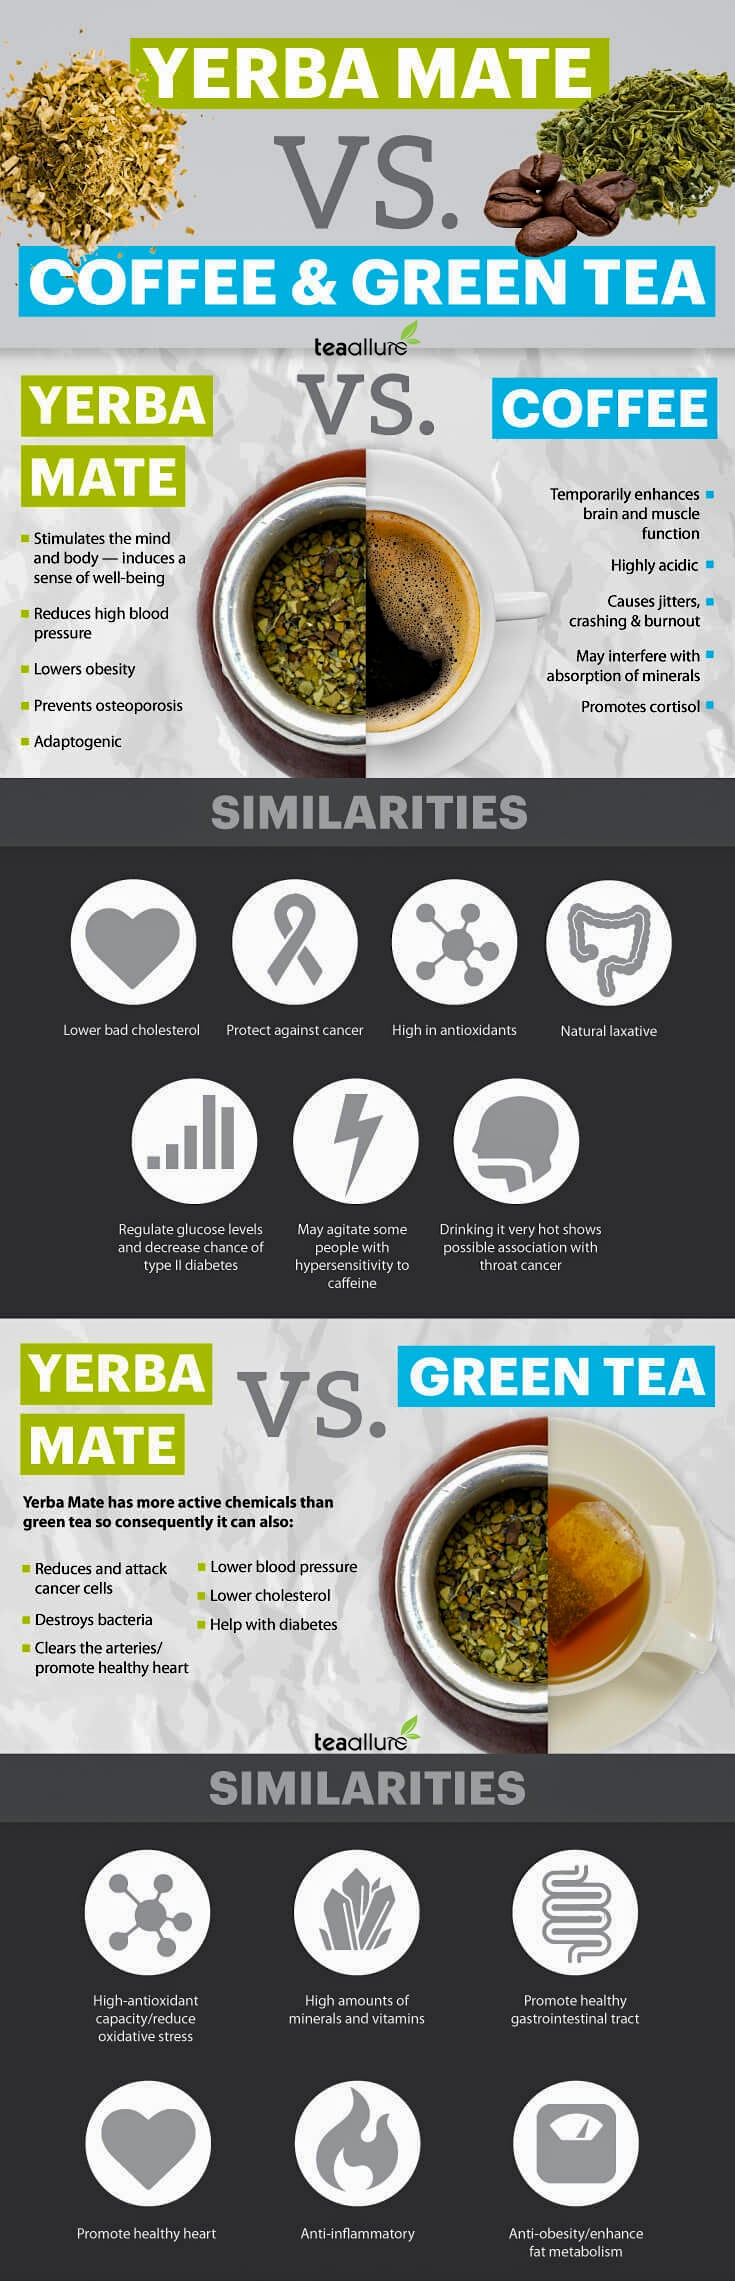 Yerba mate vs coffee and green tea